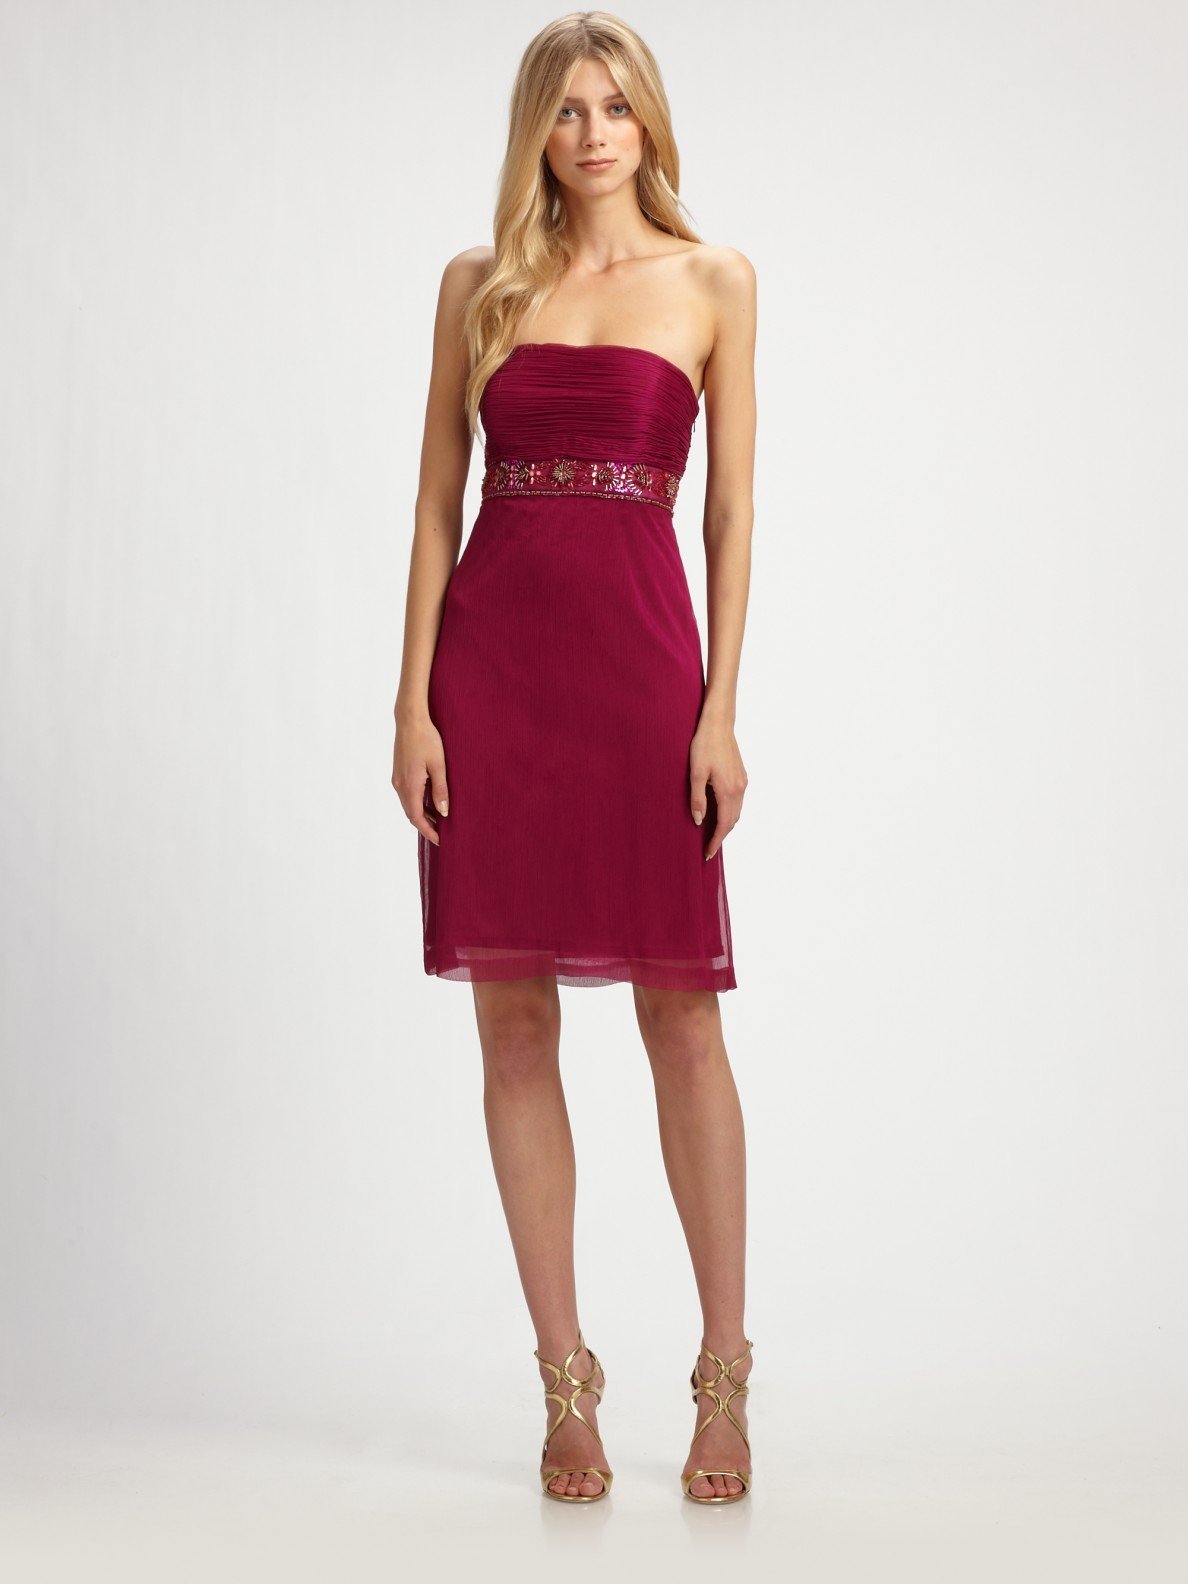 Sue wong Beaded Strapless Dress in Purple - Lyst